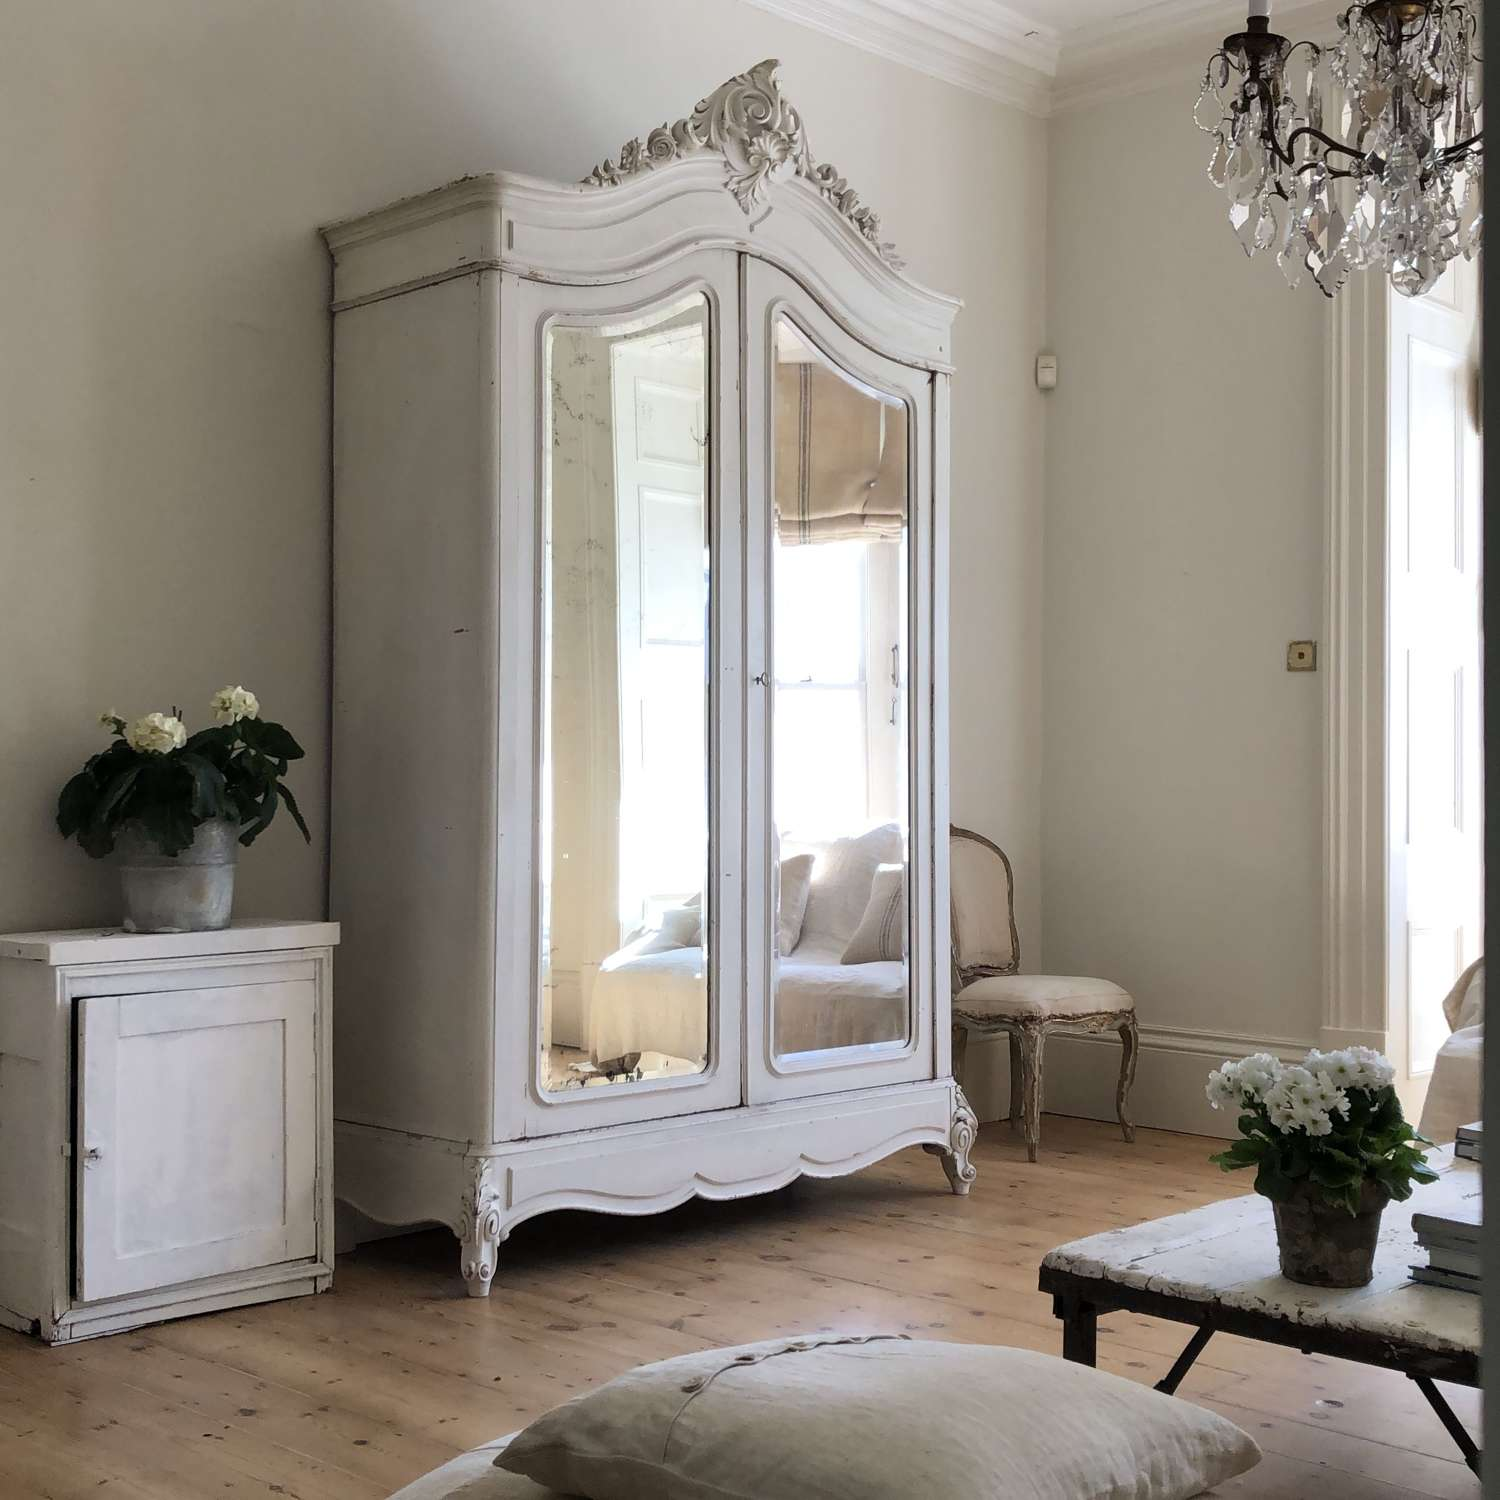 Large antique French armoire wardrobe with hanging rail